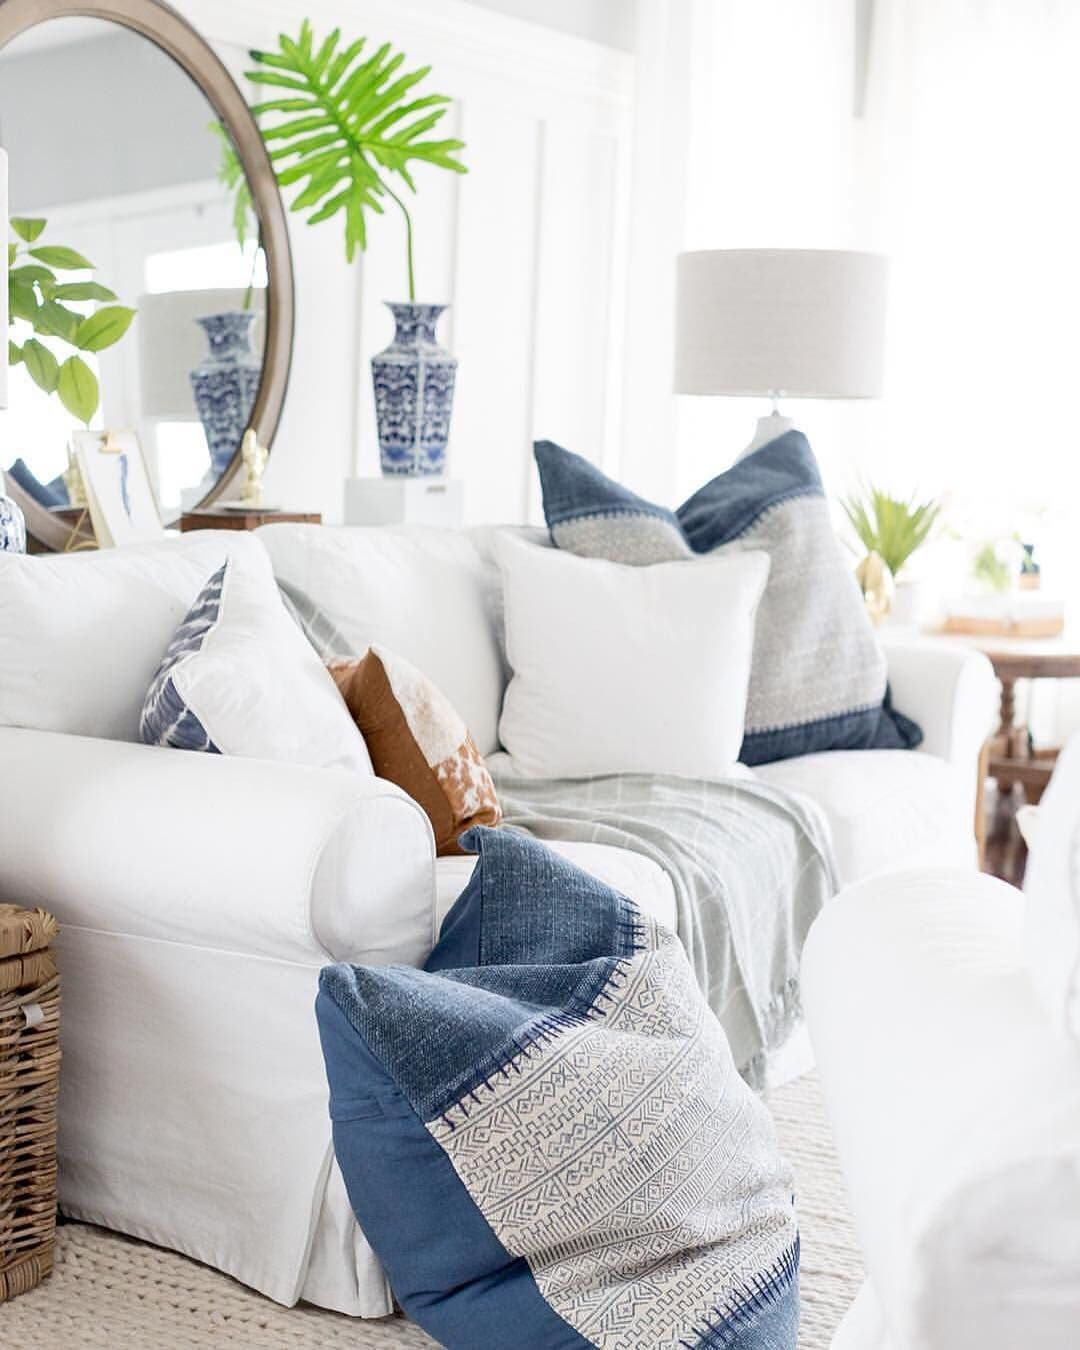 Color combos we live for: navy and white! Thanks for sharing your ...